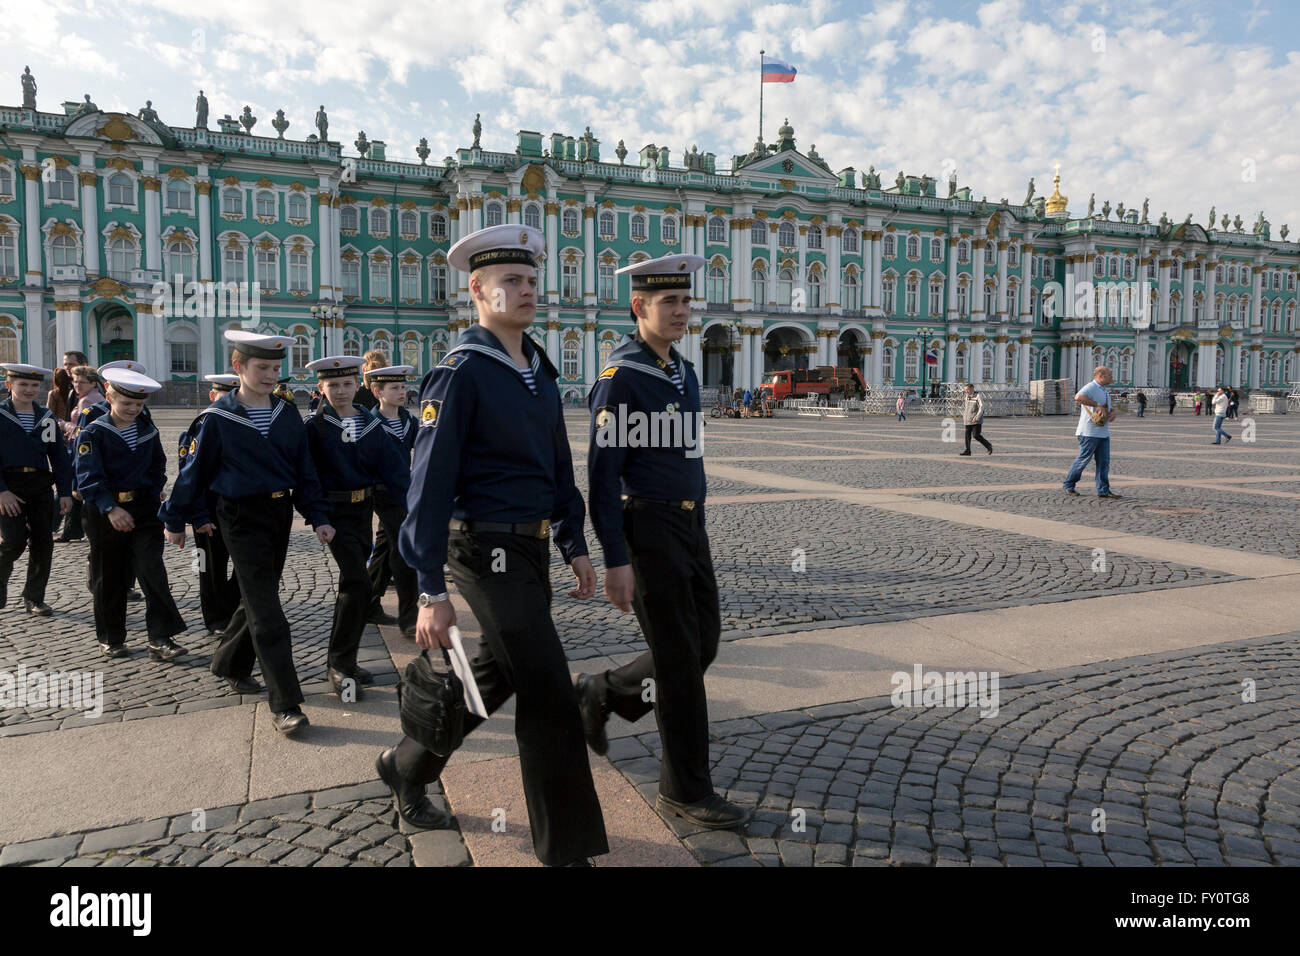 Boys clothing sailors walking on the Palace Square at the center of St. Petersburg city, Russia - Stock Image